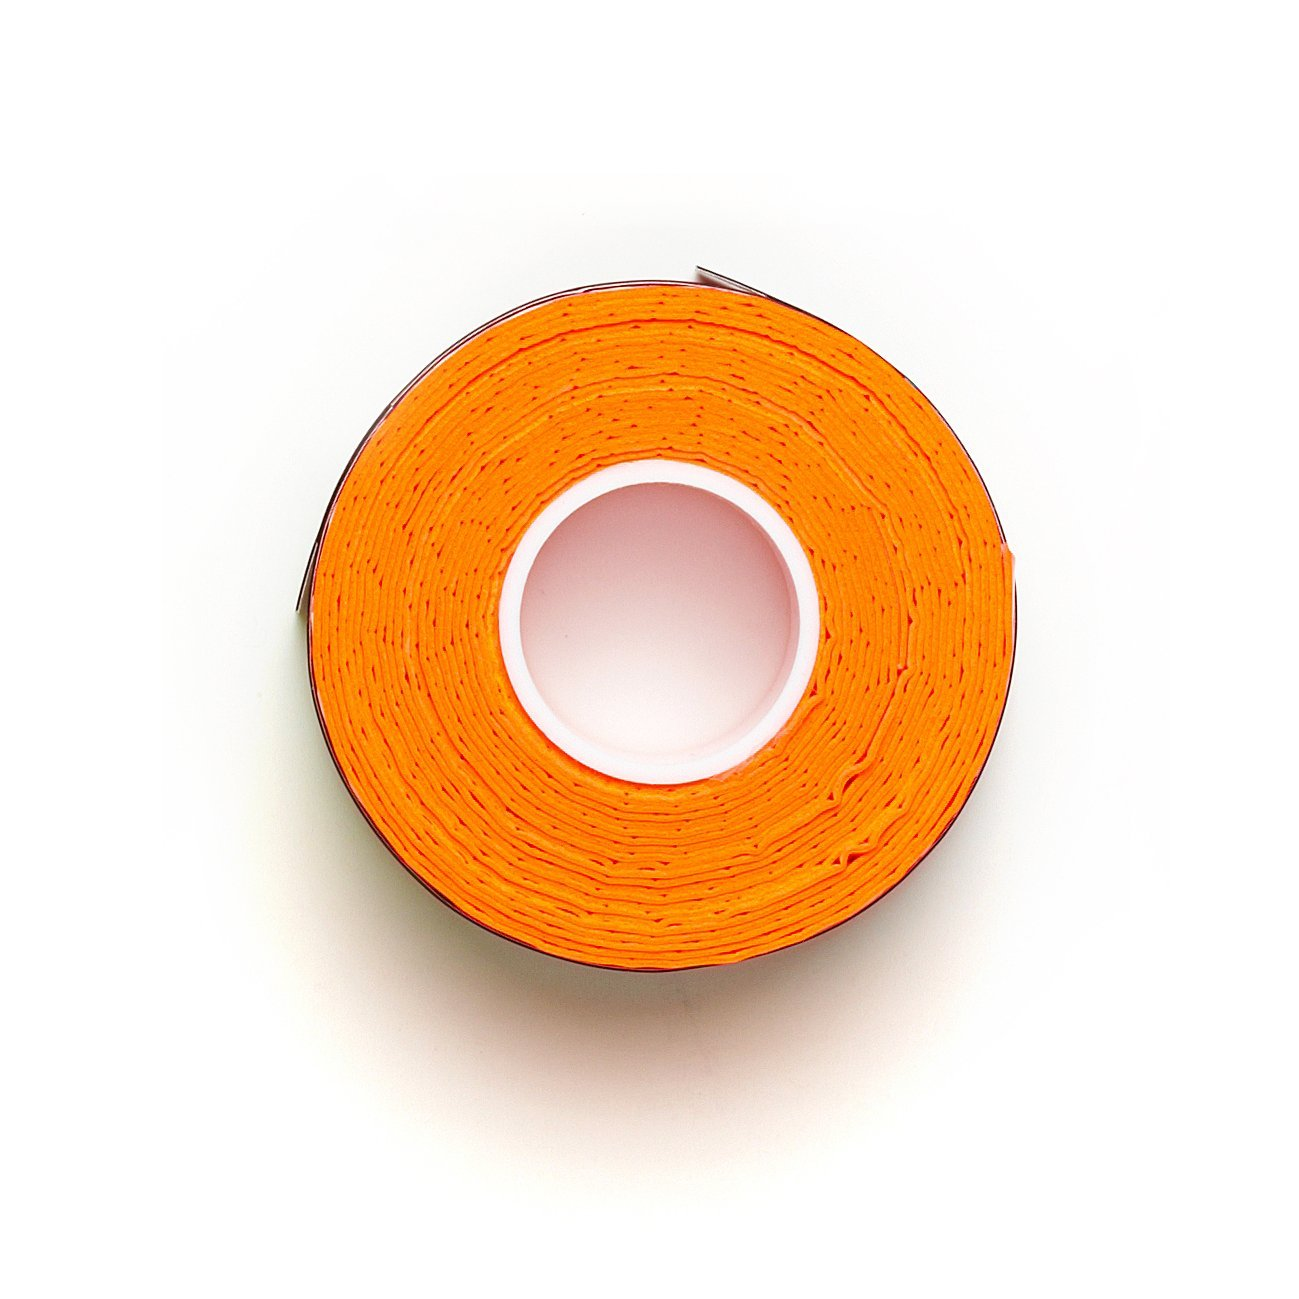 TAAN Tennis Overgrip, overgrip Tape Badminton, Tennis, Squash Rackets, Can be Used 3 Grips